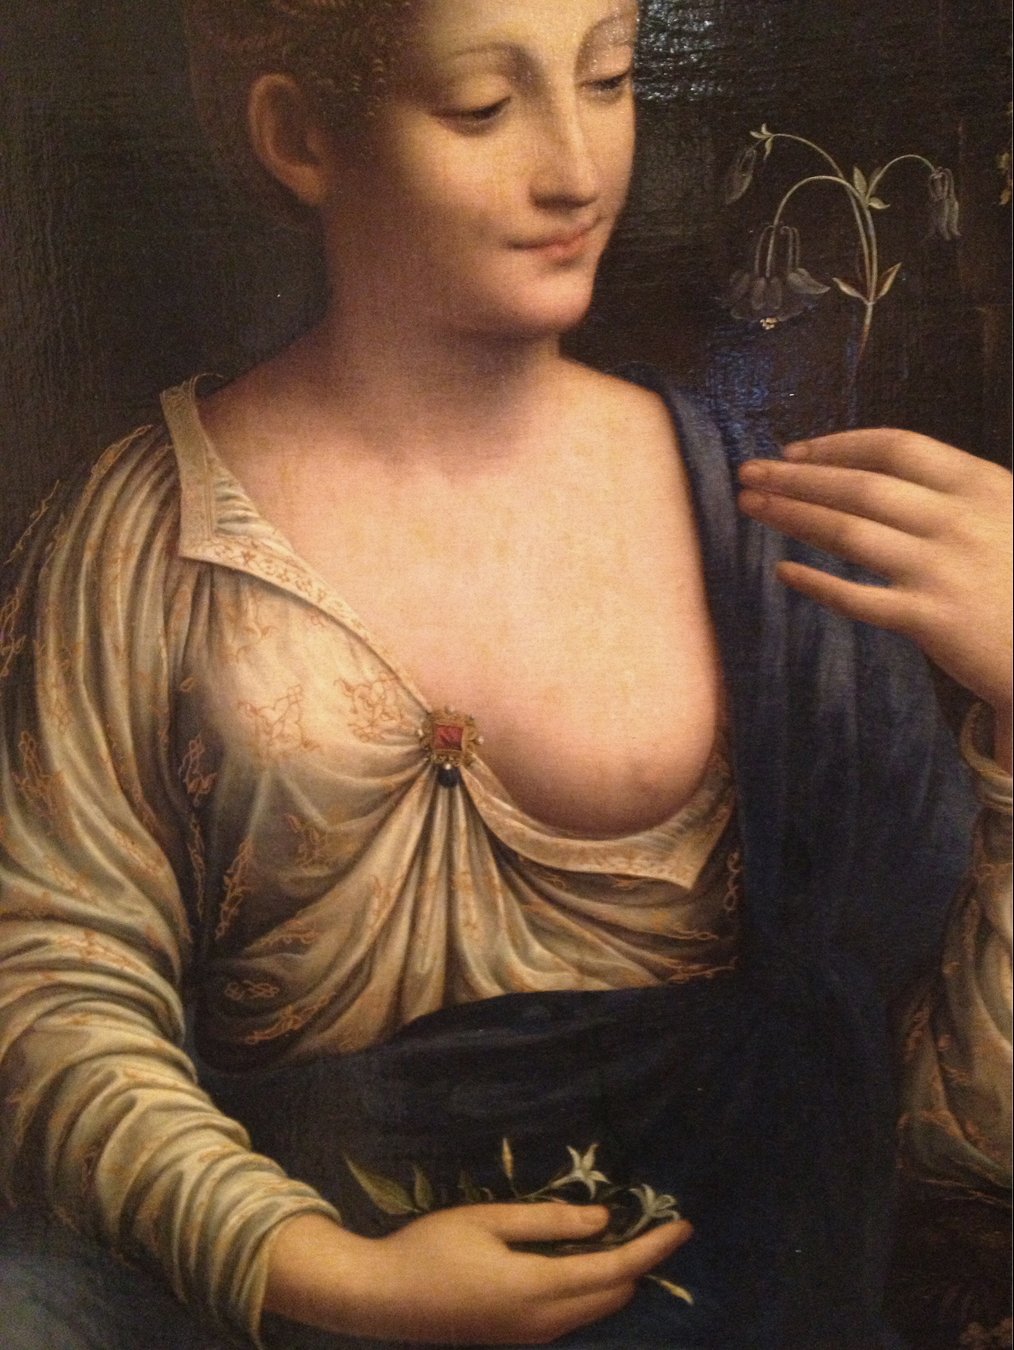 A new Da Vinci painting: La Colombina